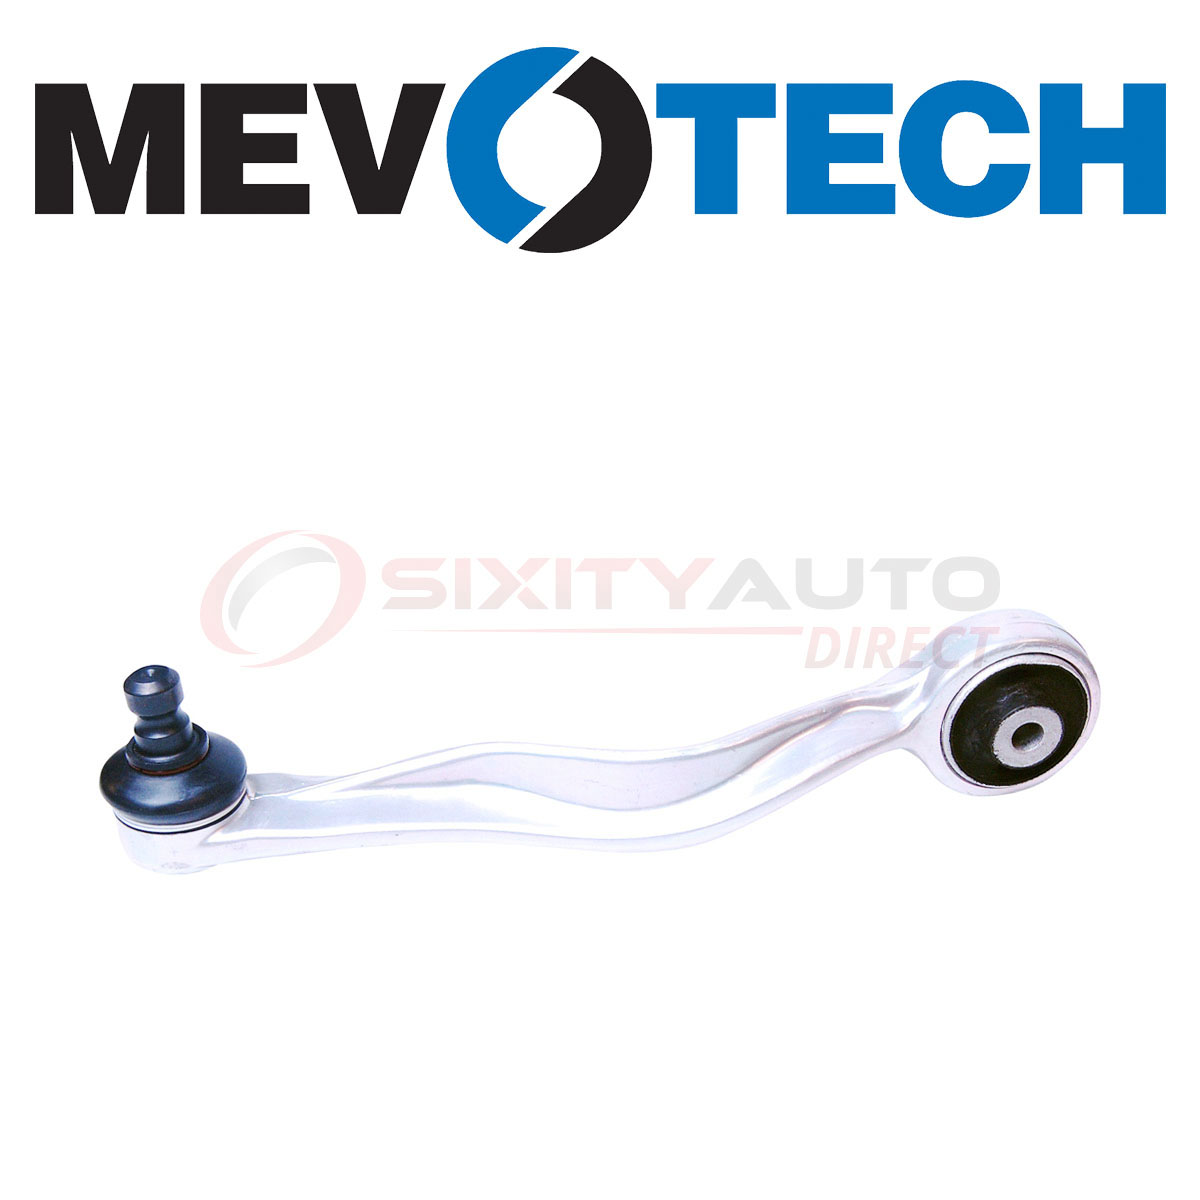 Mevotech Control Arm & Ball Joint Assembly For 2003 Audi